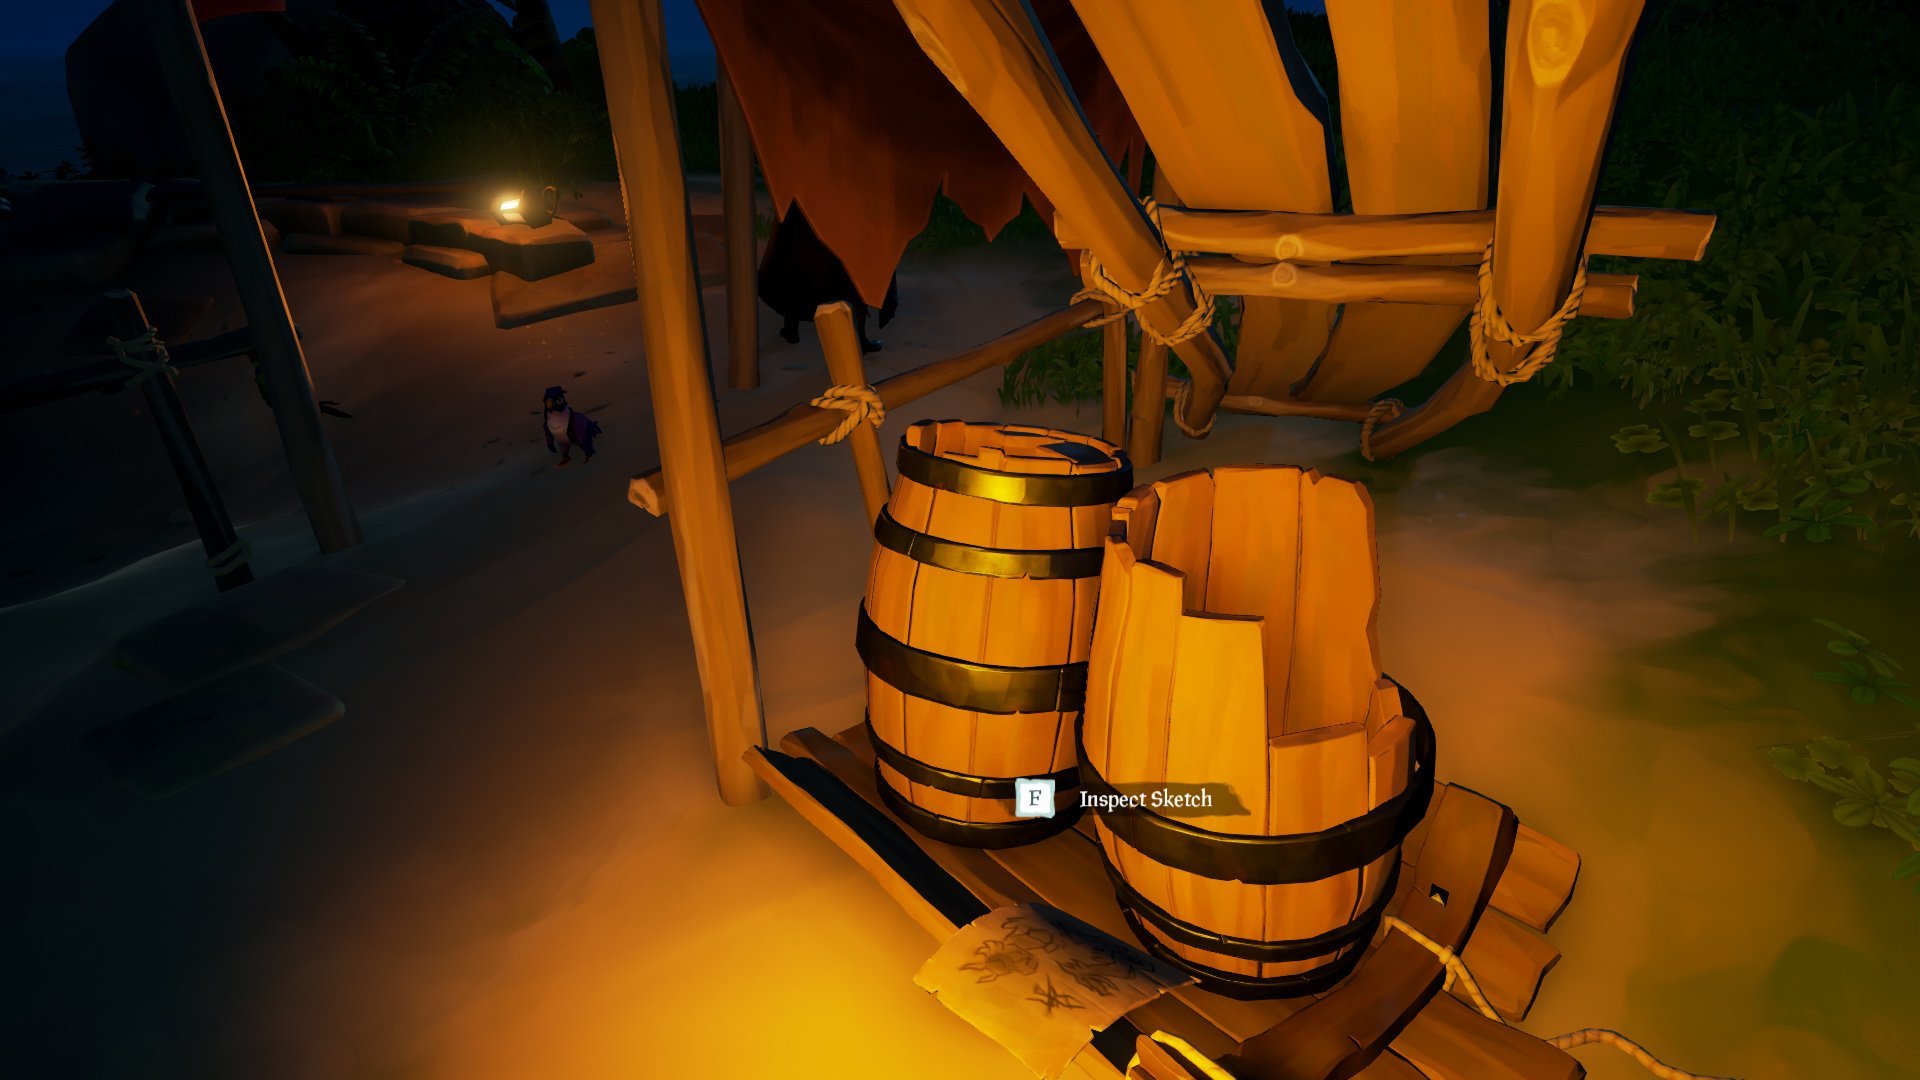 Stitcher Jims beloved sketch barrels Sea of Thieves